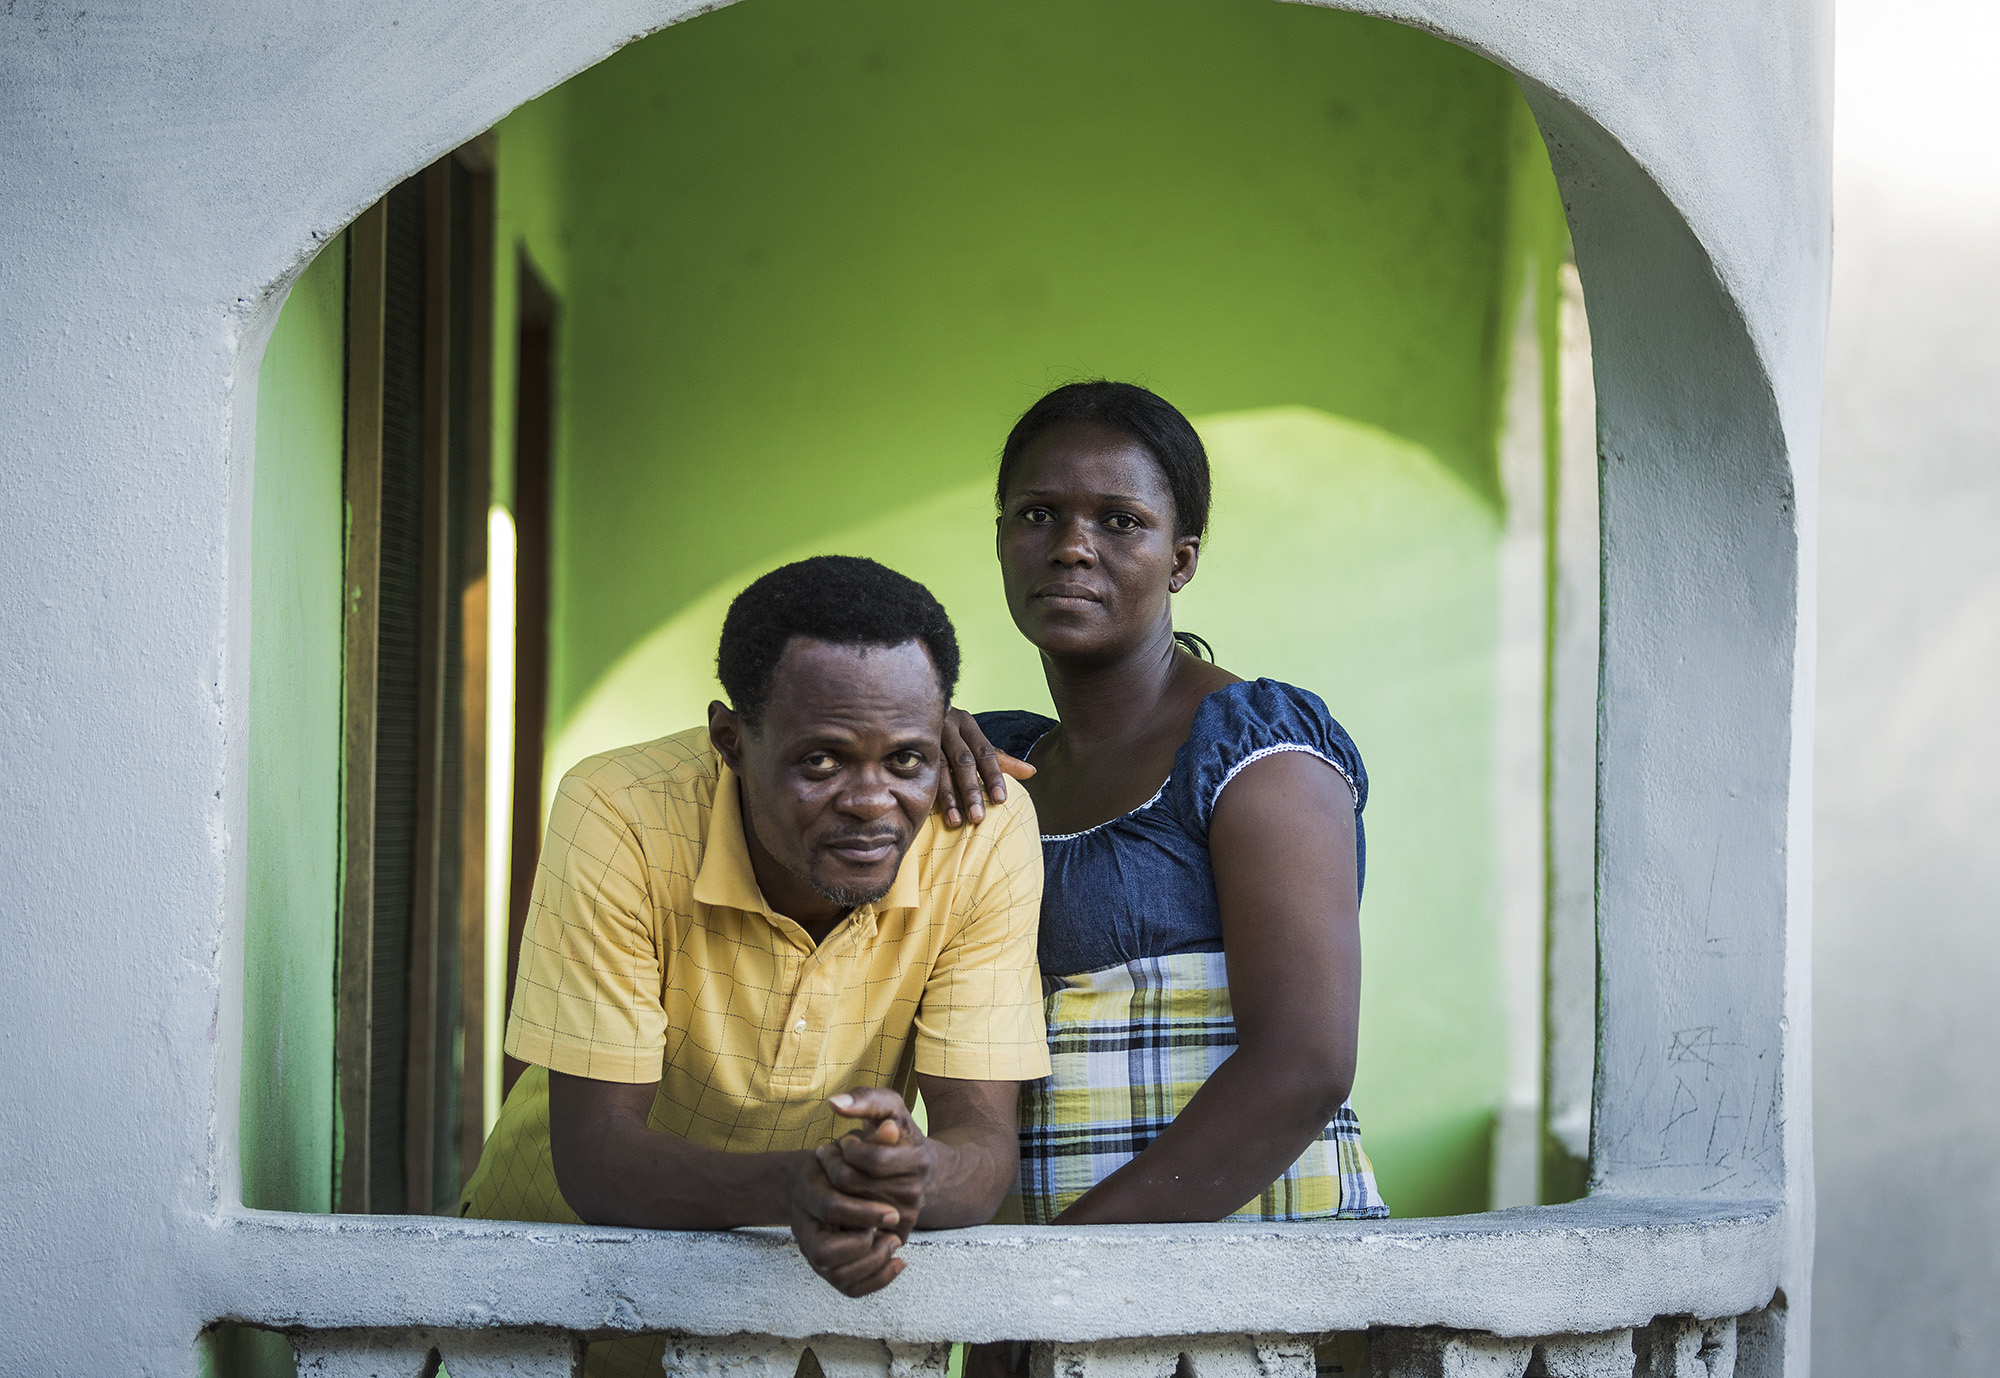 """NEW GEORGIA ESTATE, LIBERIA:Pastor John Prosper Ghartay Sr. with wife, Ophelia. """"I think it was the first Sunday in August. It was the time when Ebola was at its peak. The fear it brought. The segregation it brought among us in the community and as Liberians…there was no shaking of hands no touching. A member of our congregation died and her children were all sick. We took them to the ETU. I was afraid that I would get Ebola and infect a member of my family. I thank God, that by his grace we were able to get through the crisis and we're still alive. I would say Ebola made the community stronger because when it started everyone was afraid, everyone was staying home. We were not interacting, we were not touching. But when the Ebola kept increasing, the community would still come to the church every day, sharing information, giving Ebola updates, telling people how to handle anyone who is sick. By the grace of God we were able to fight as a community."""" Photo by Sarah Grile"""